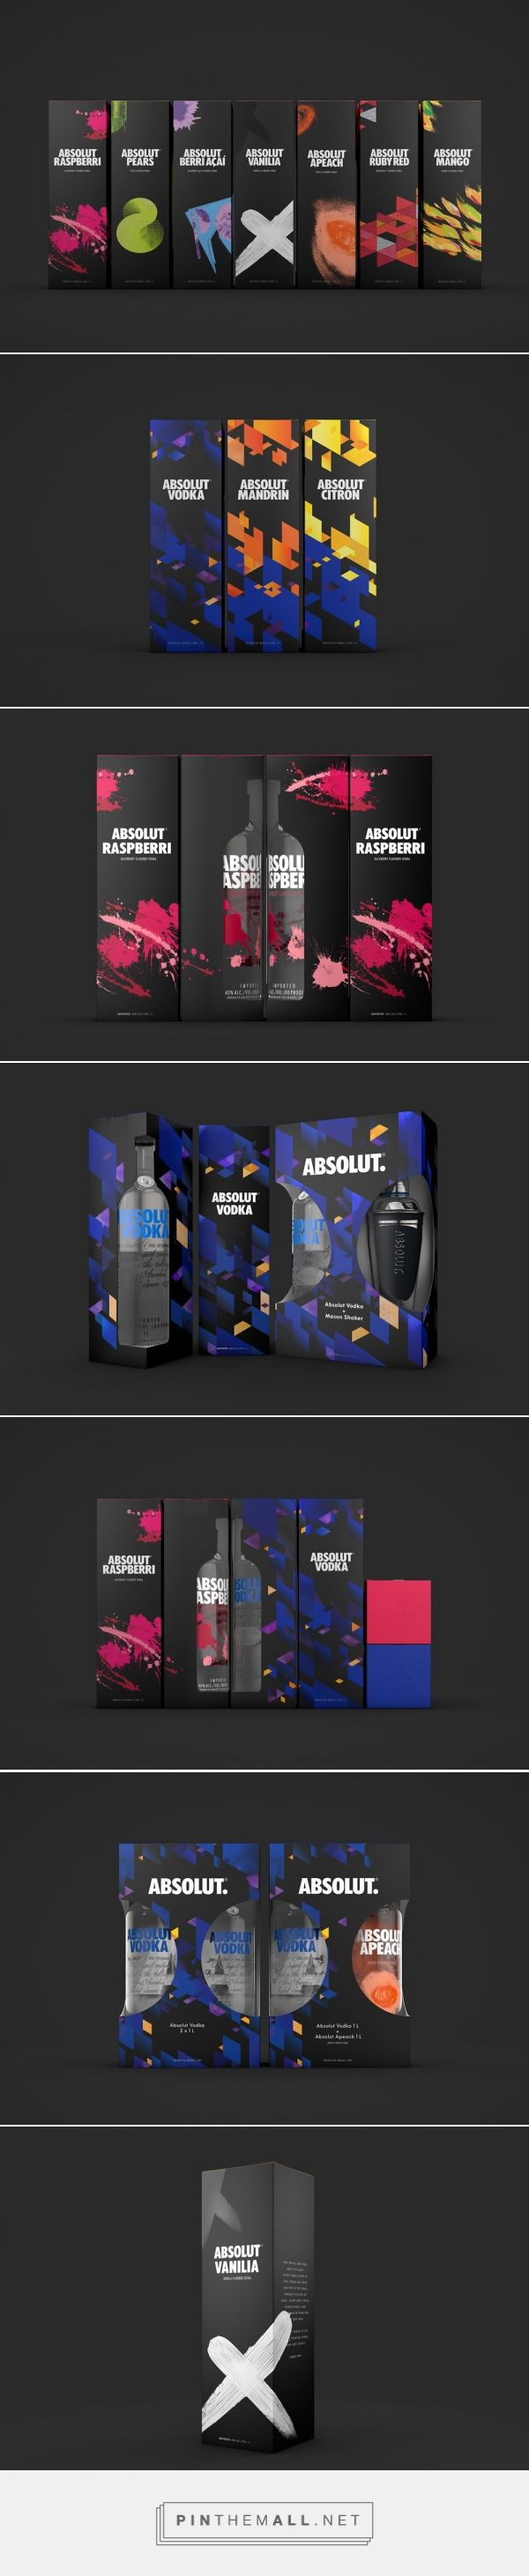 Absolut Vodka packaging design by Amore Brand Identity Studios. Source: World Packaging Design Society. Pin curated by #SFields99 #packaging #design